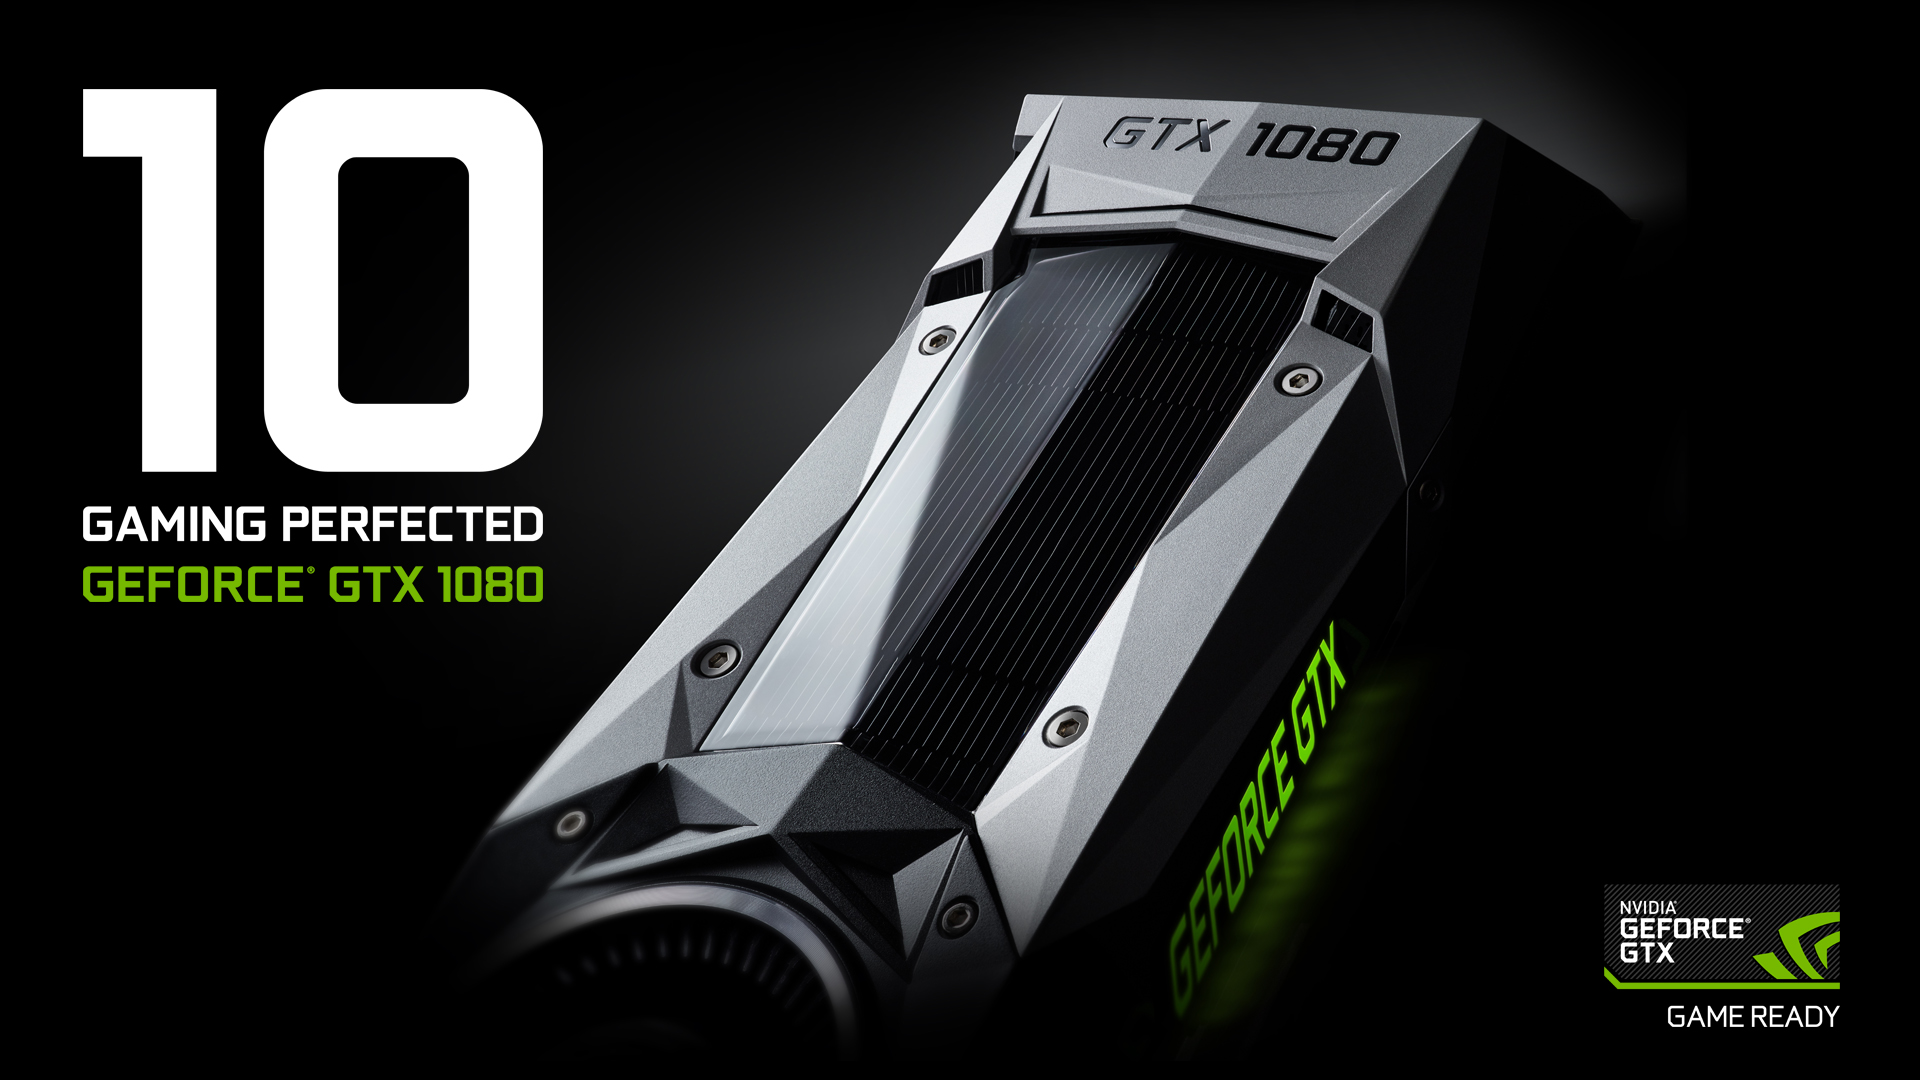 Introducing The GeForce GTX 1080 Gaming Perfected